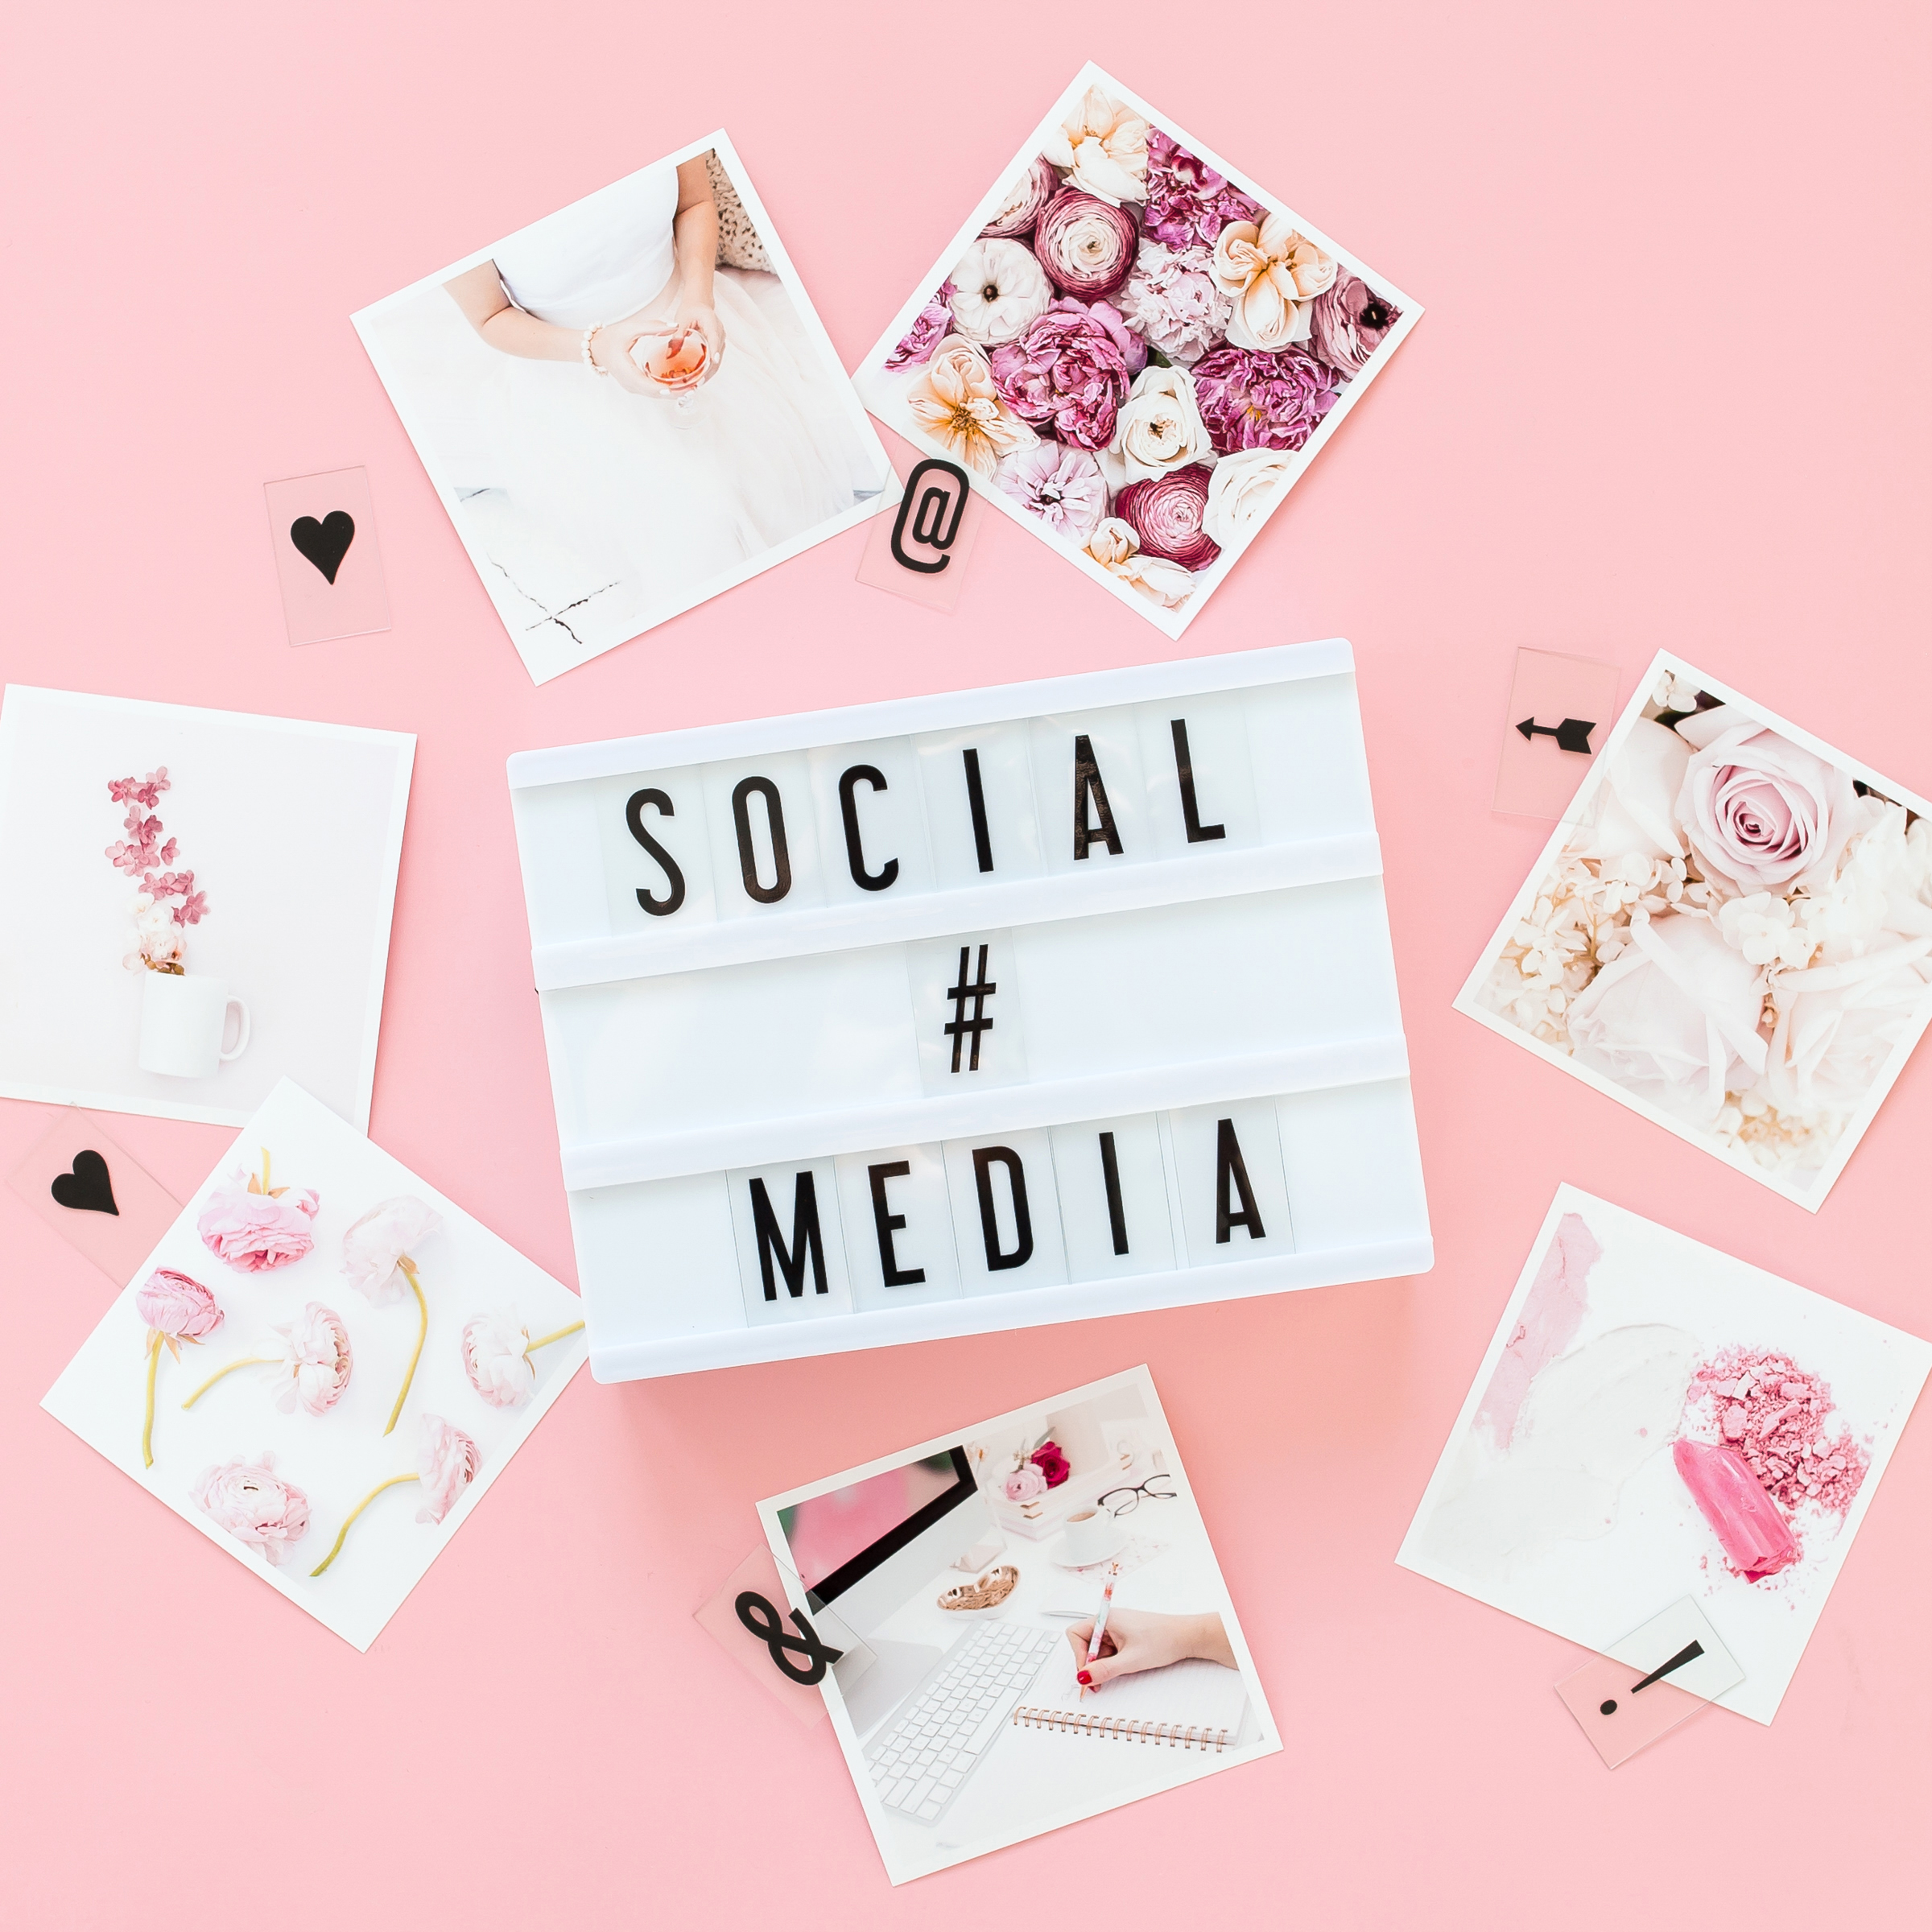 How To Define Your Personal Brand On Social Media